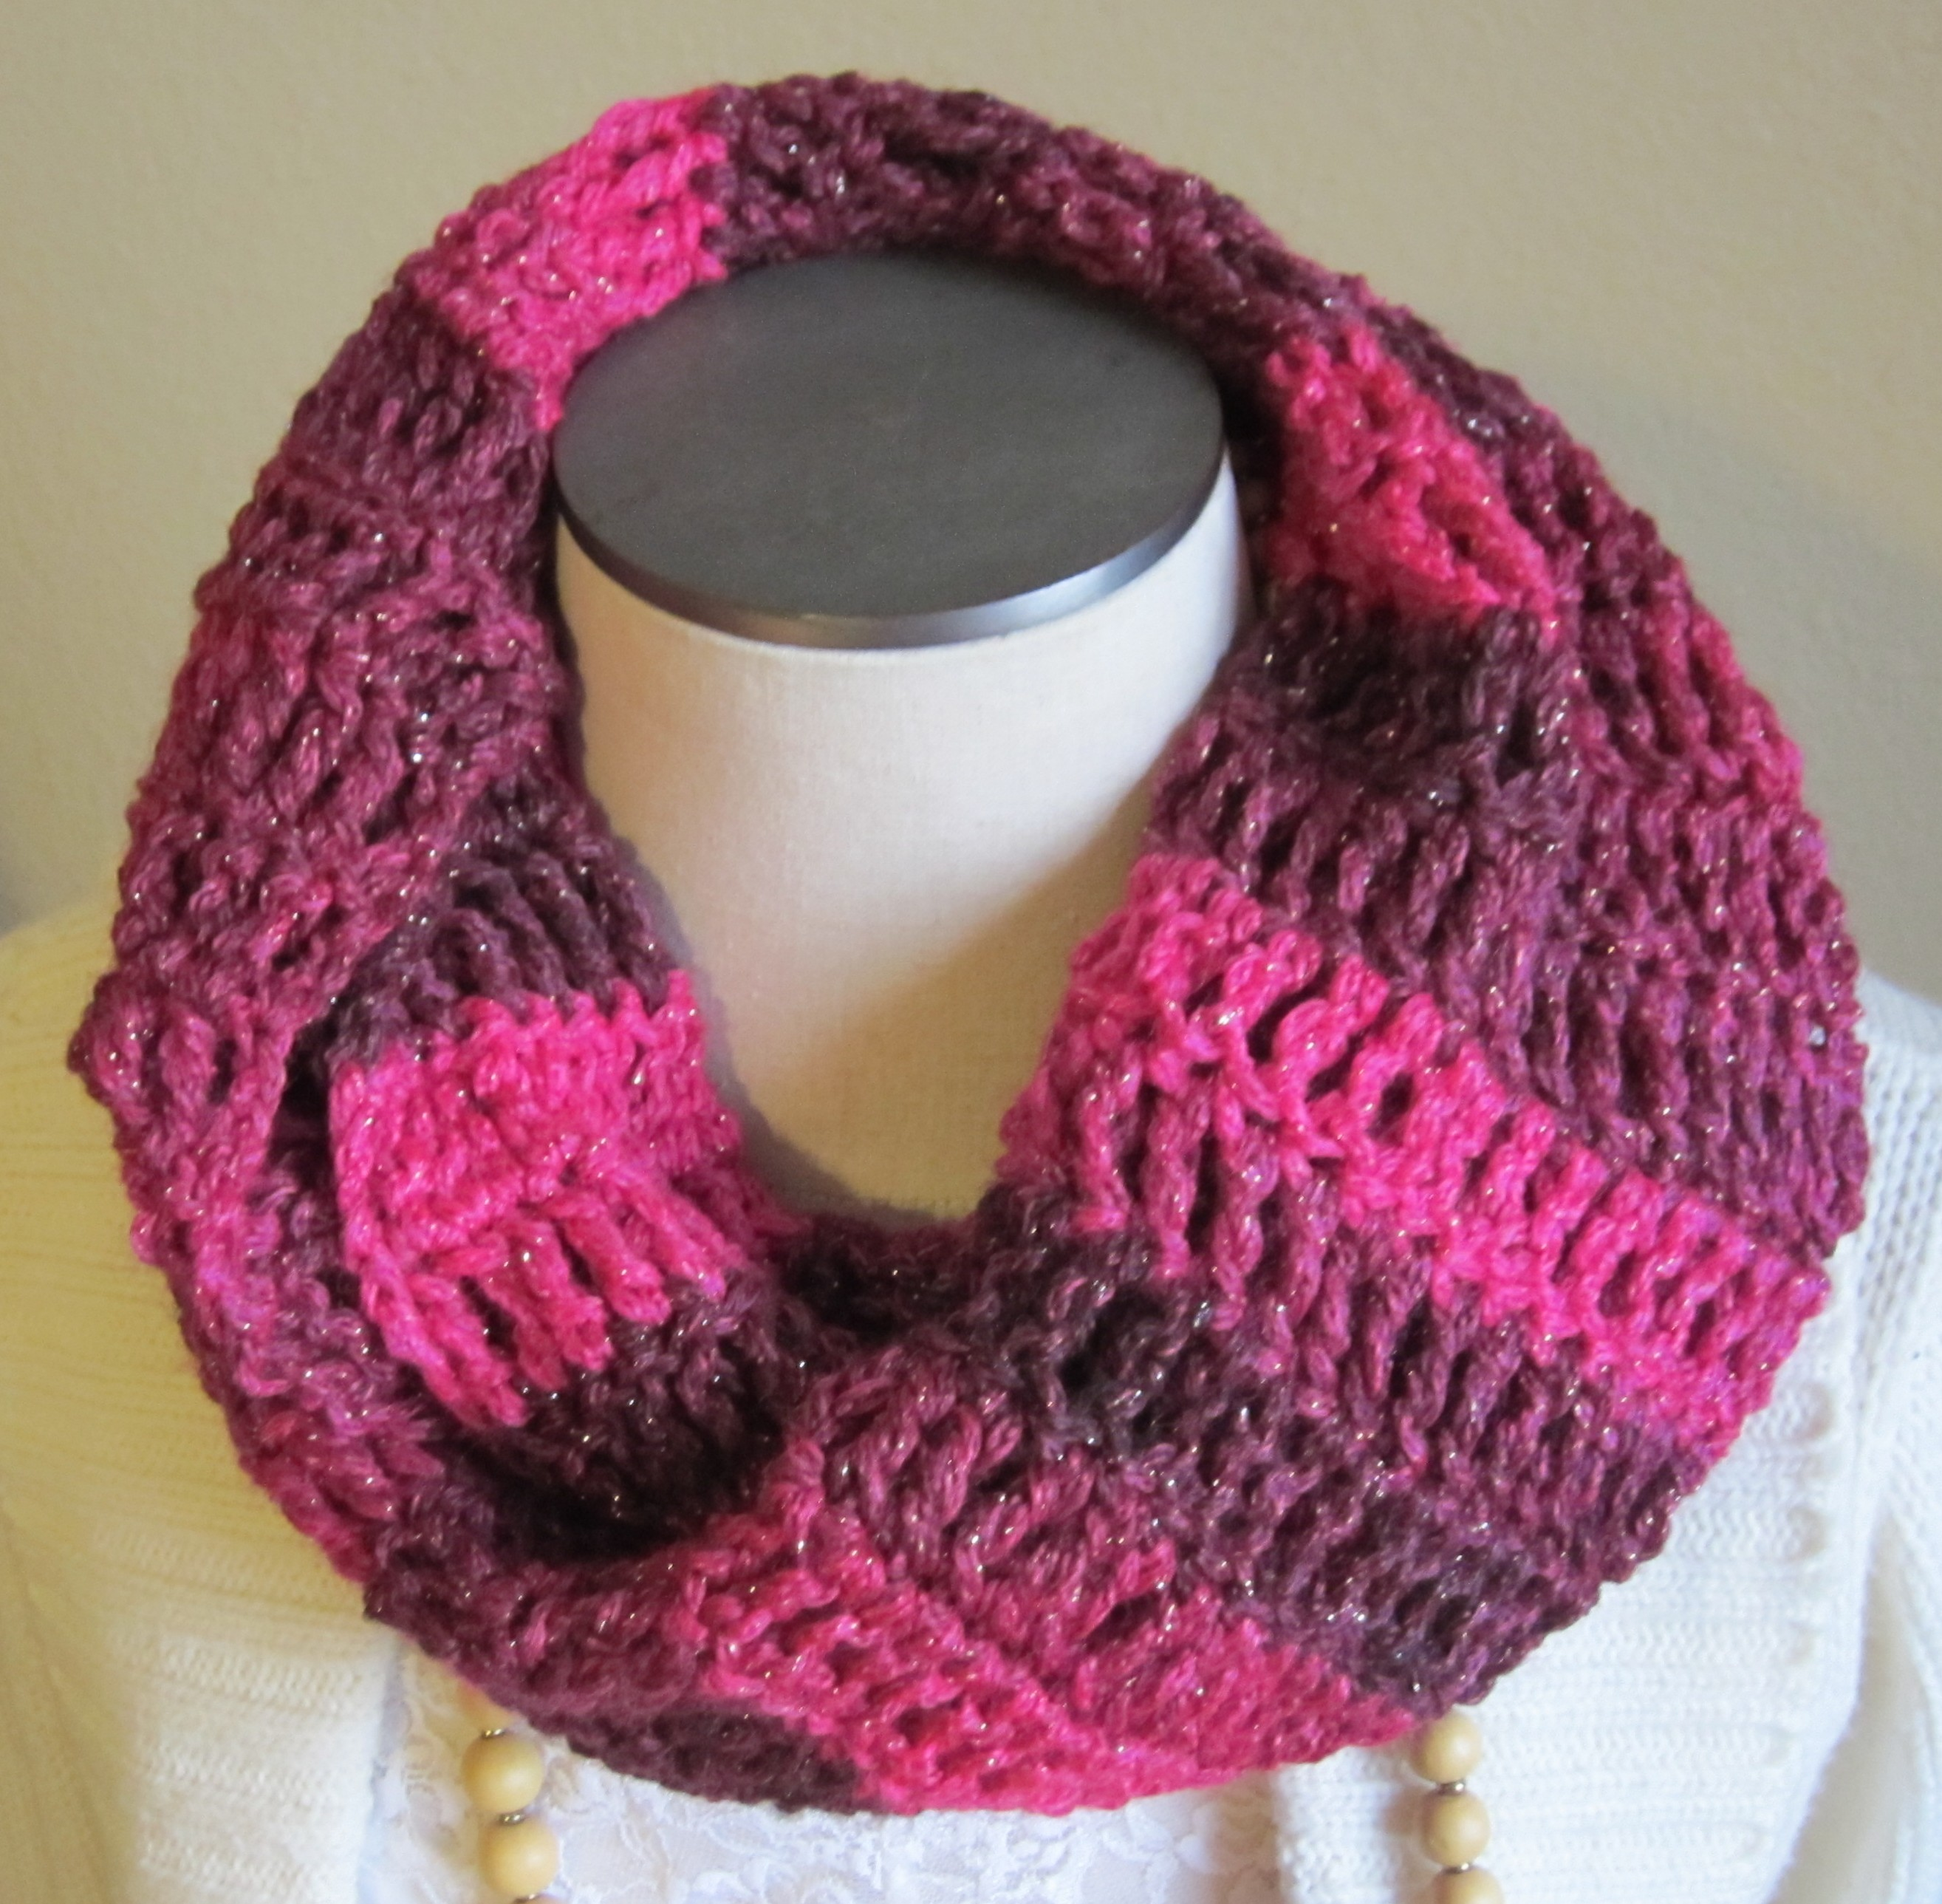 Crochet Cowl/Hooded Scarf/Infinity Scarf Made with Red Heart ...